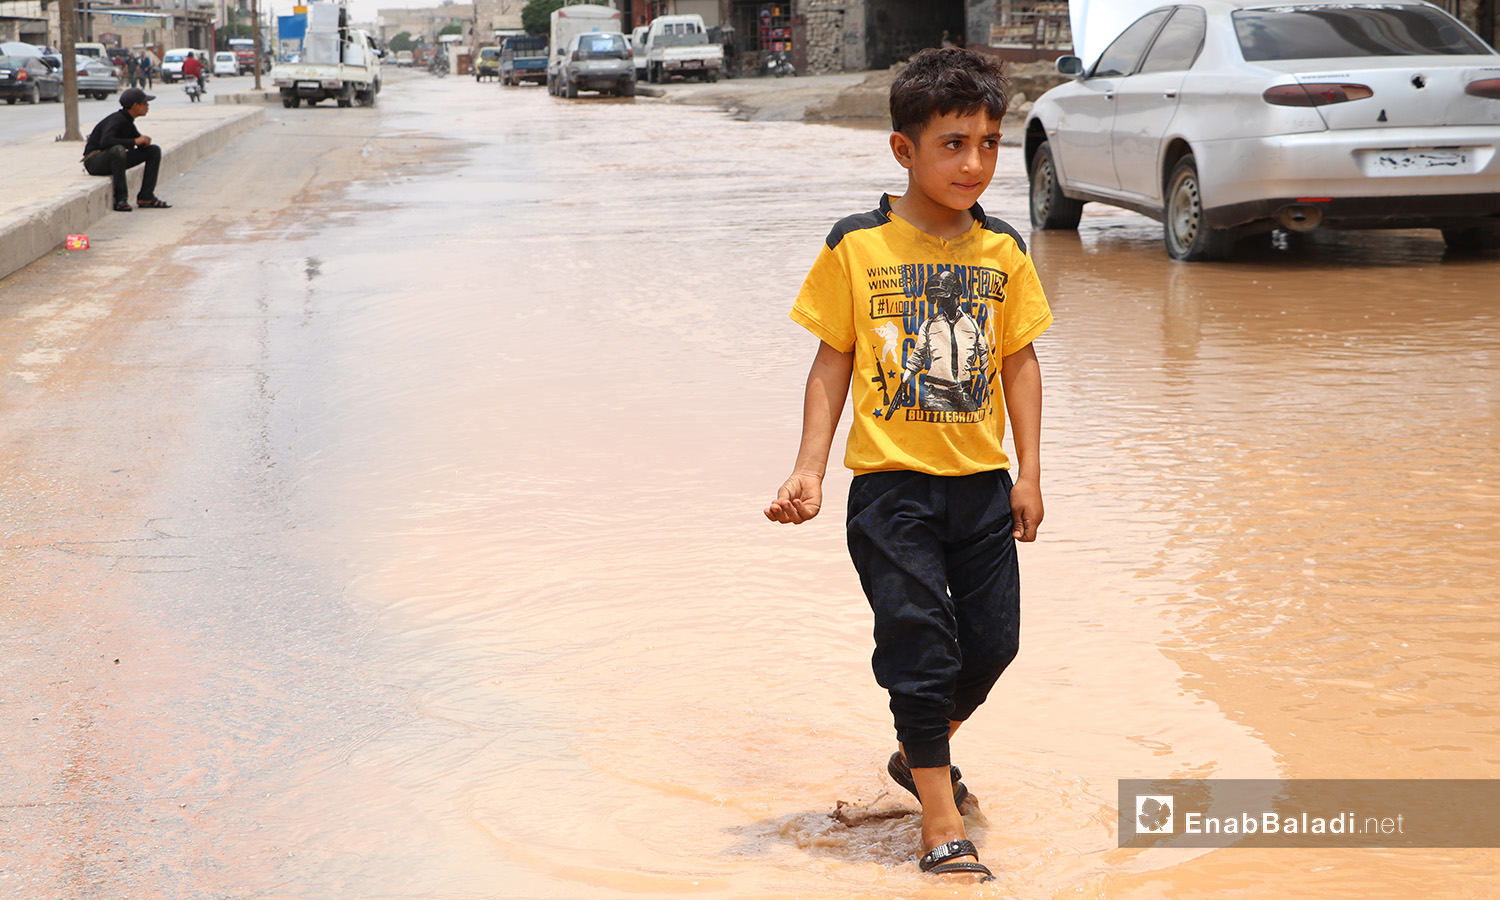 A child walking through leaked water due to the breakdowns of the water pipes system that provides water for the al-Bab city in northern Aleppo countryside – 20 June 2020 (Enab Baladi / Asim Melhem)